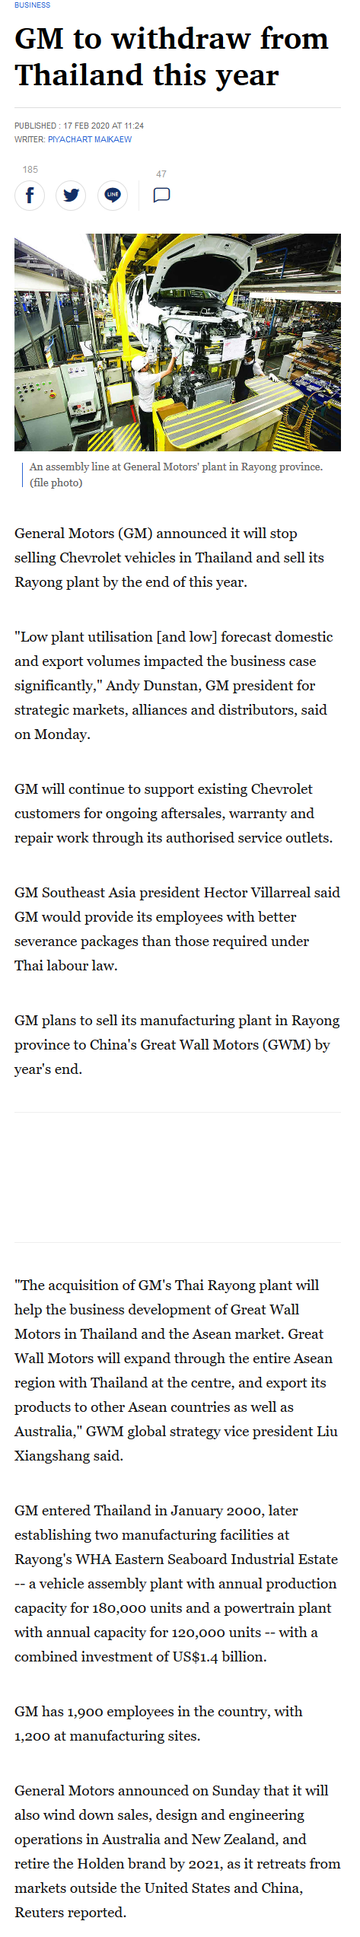 GM to withdraw from Thailand this year